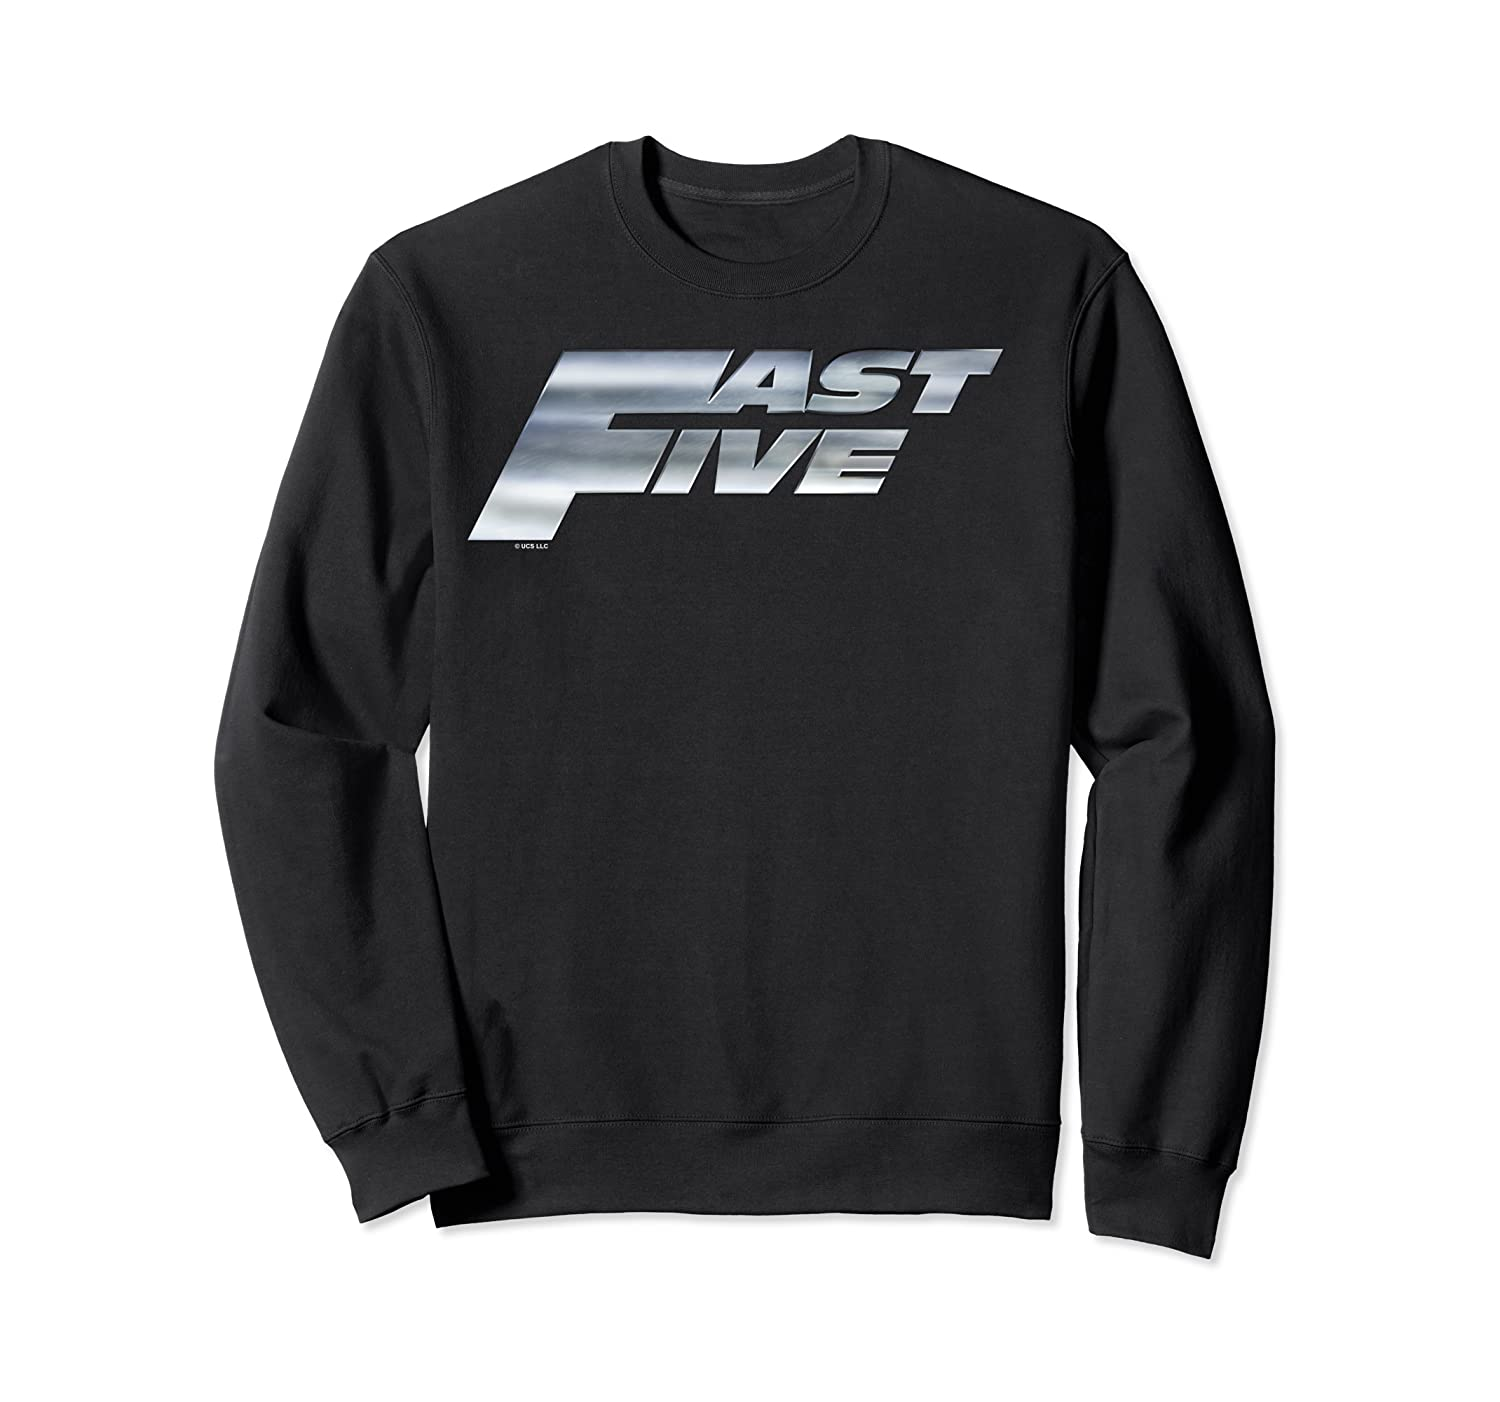 Fast Furious Five Steel Logo Pullover Shirts Crewneck Sweater